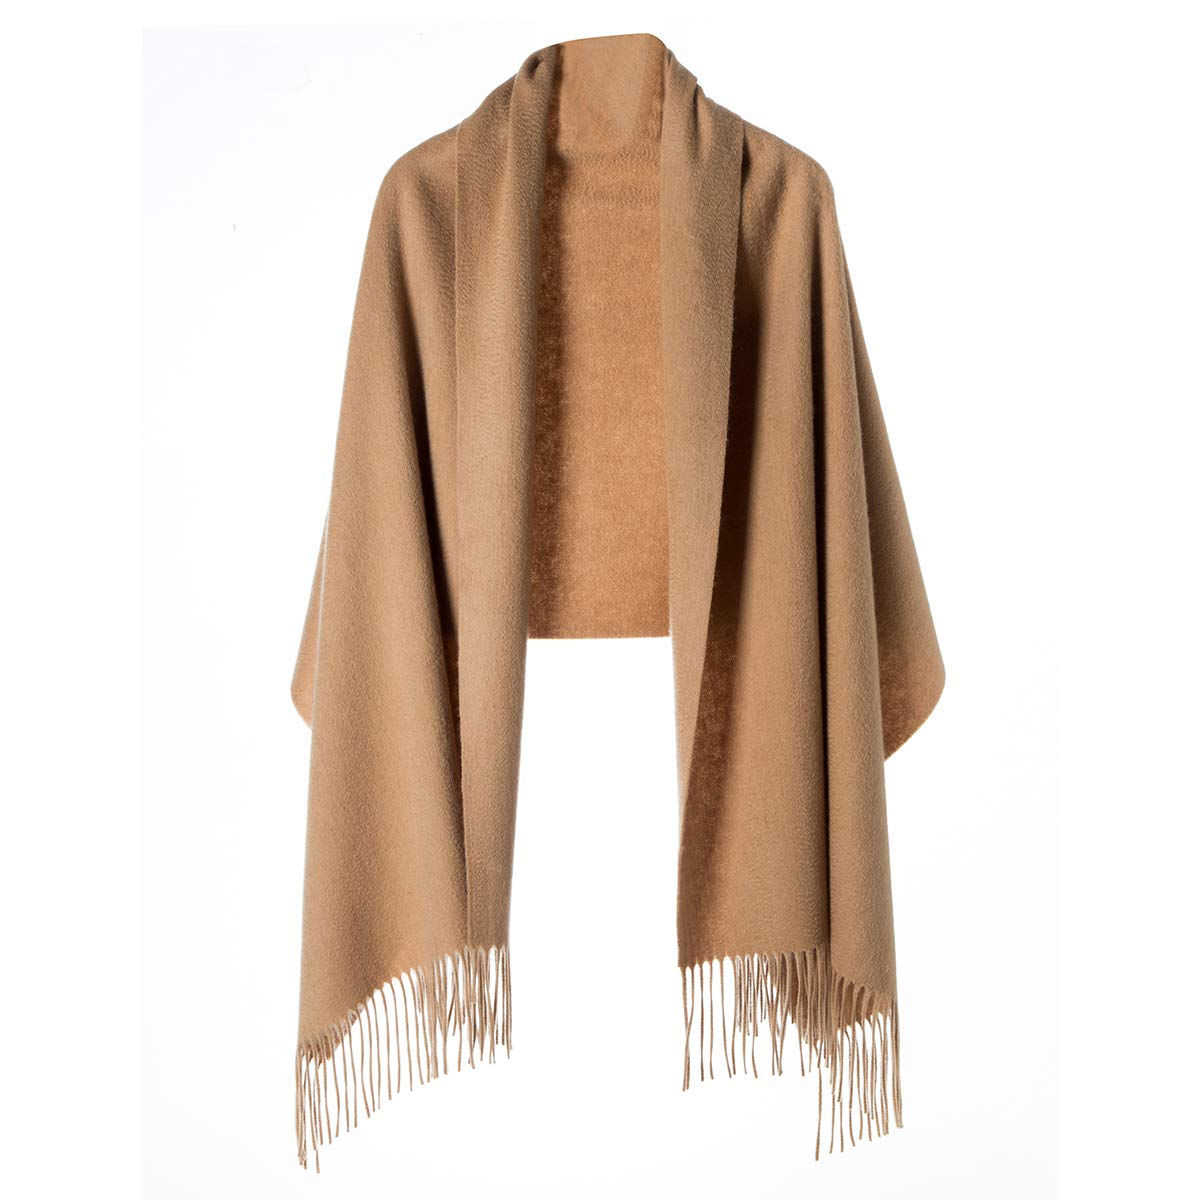 Cashmere Wrap Shawl for Women | Authentic 100% Pure Cashmere Extra Large (75inx25.6in) Scarf, Camel by KROWN CASHMERE